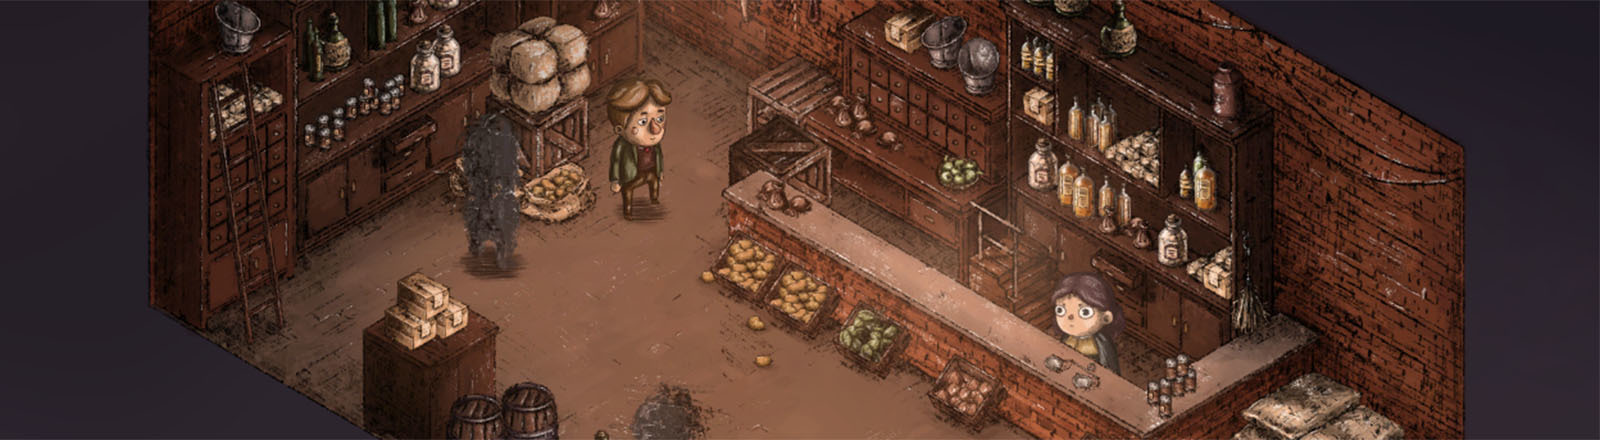 "Eine Szene aus ""The Place for the Unwilling"" von Al Pixel Games"